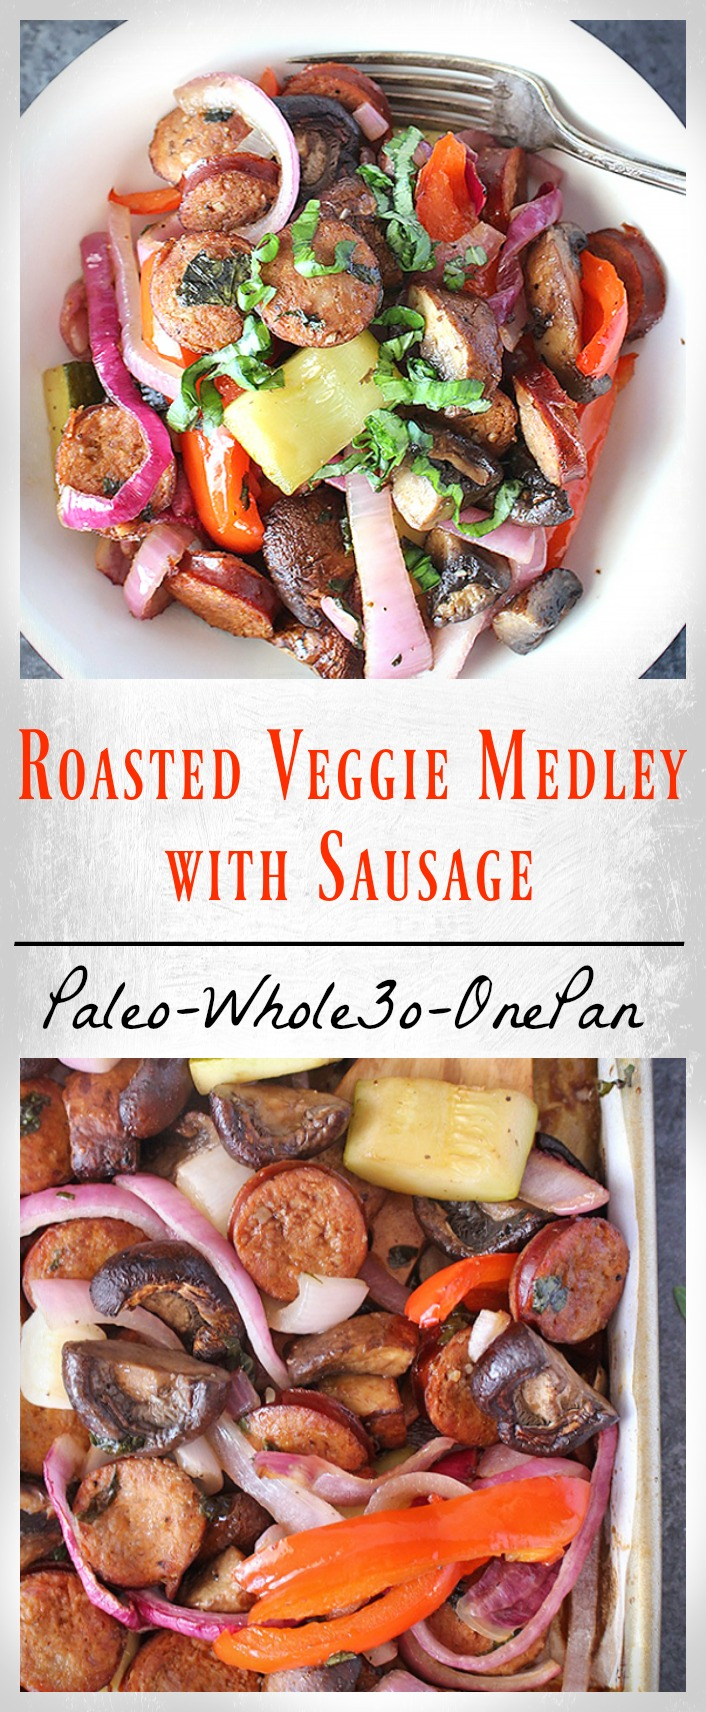 Roasted Vegetable Medley with Sausage (paleo)